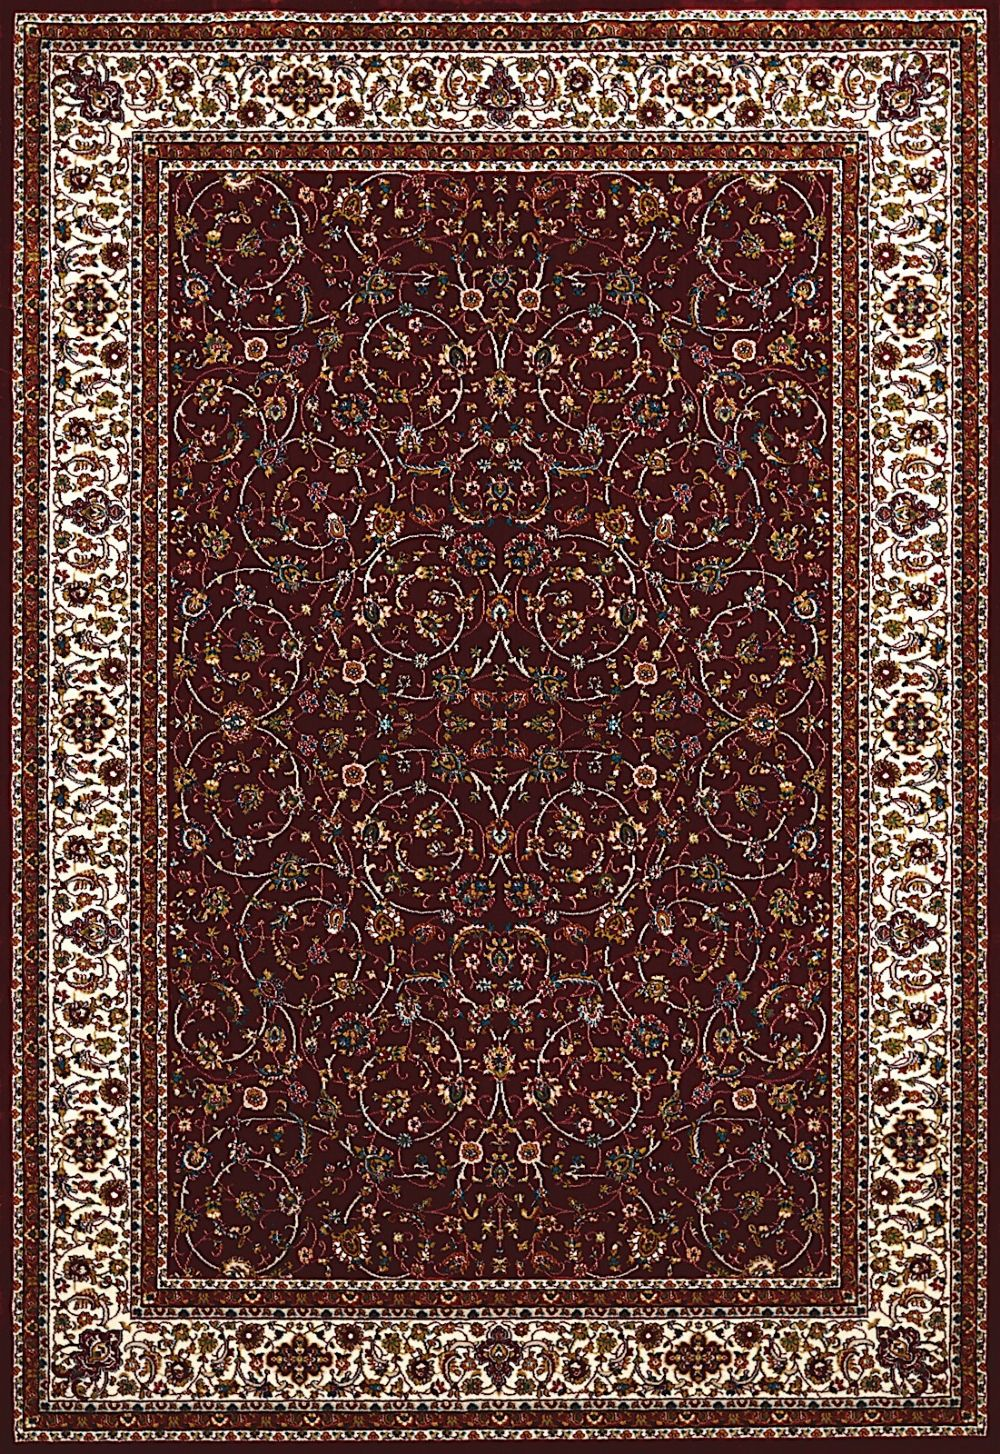 united weavers antiquities country & floral area rug collection